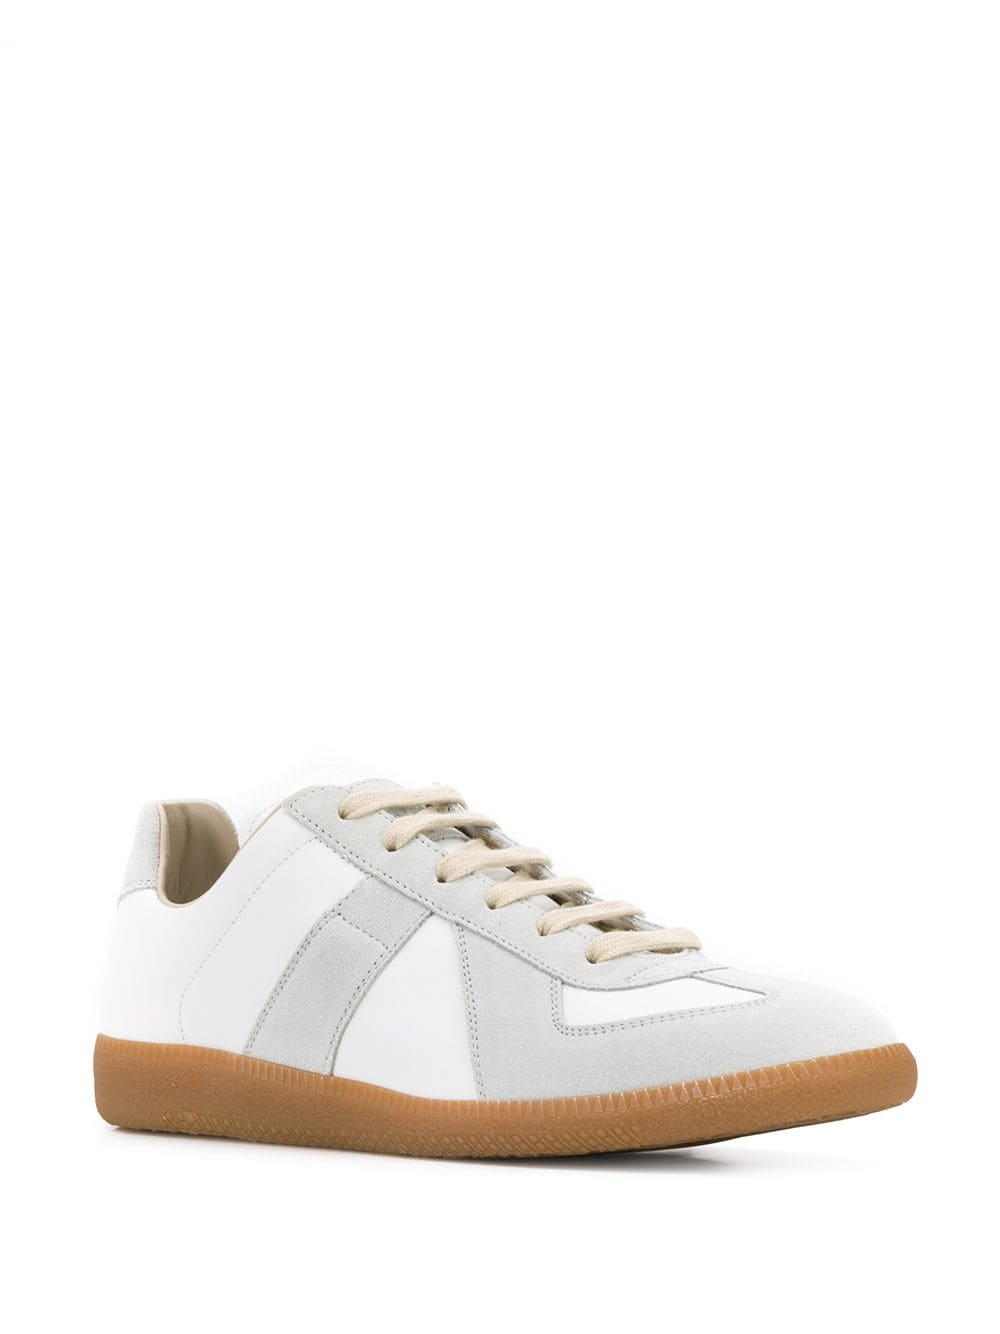 MAISON MARGIELA MEN REPLICA SNEAKERS